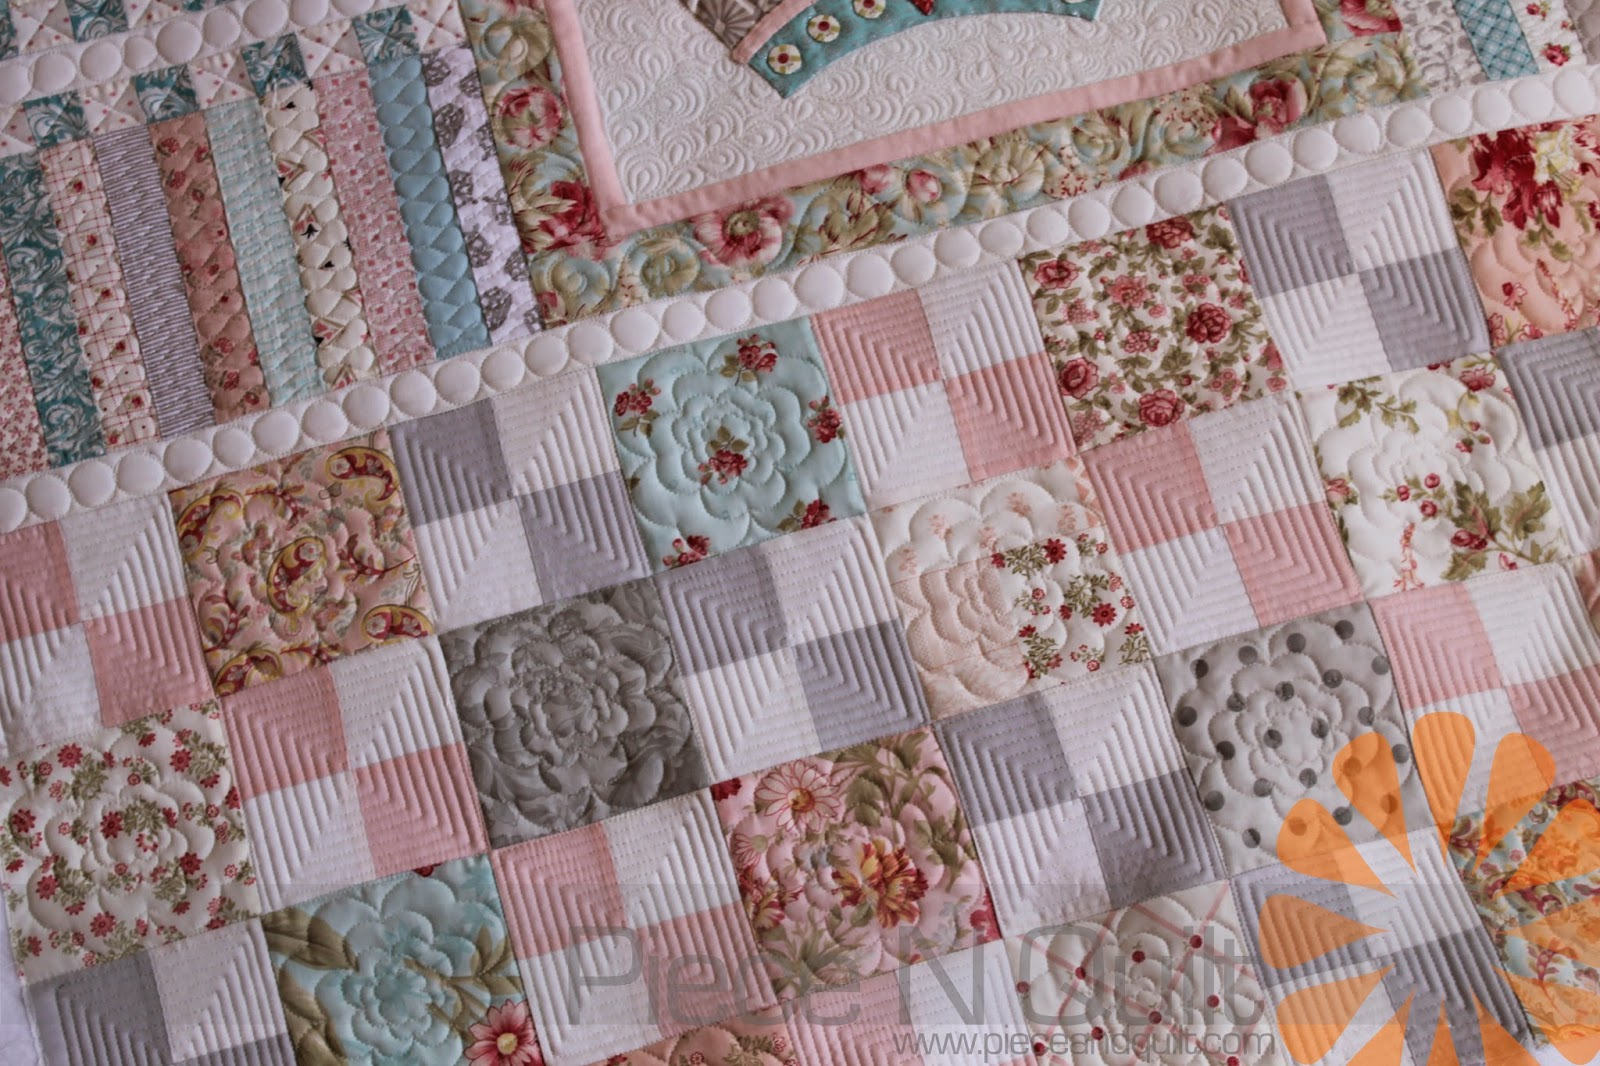 Piece N Quilt Shabby Chic Meets Geometric Quilting